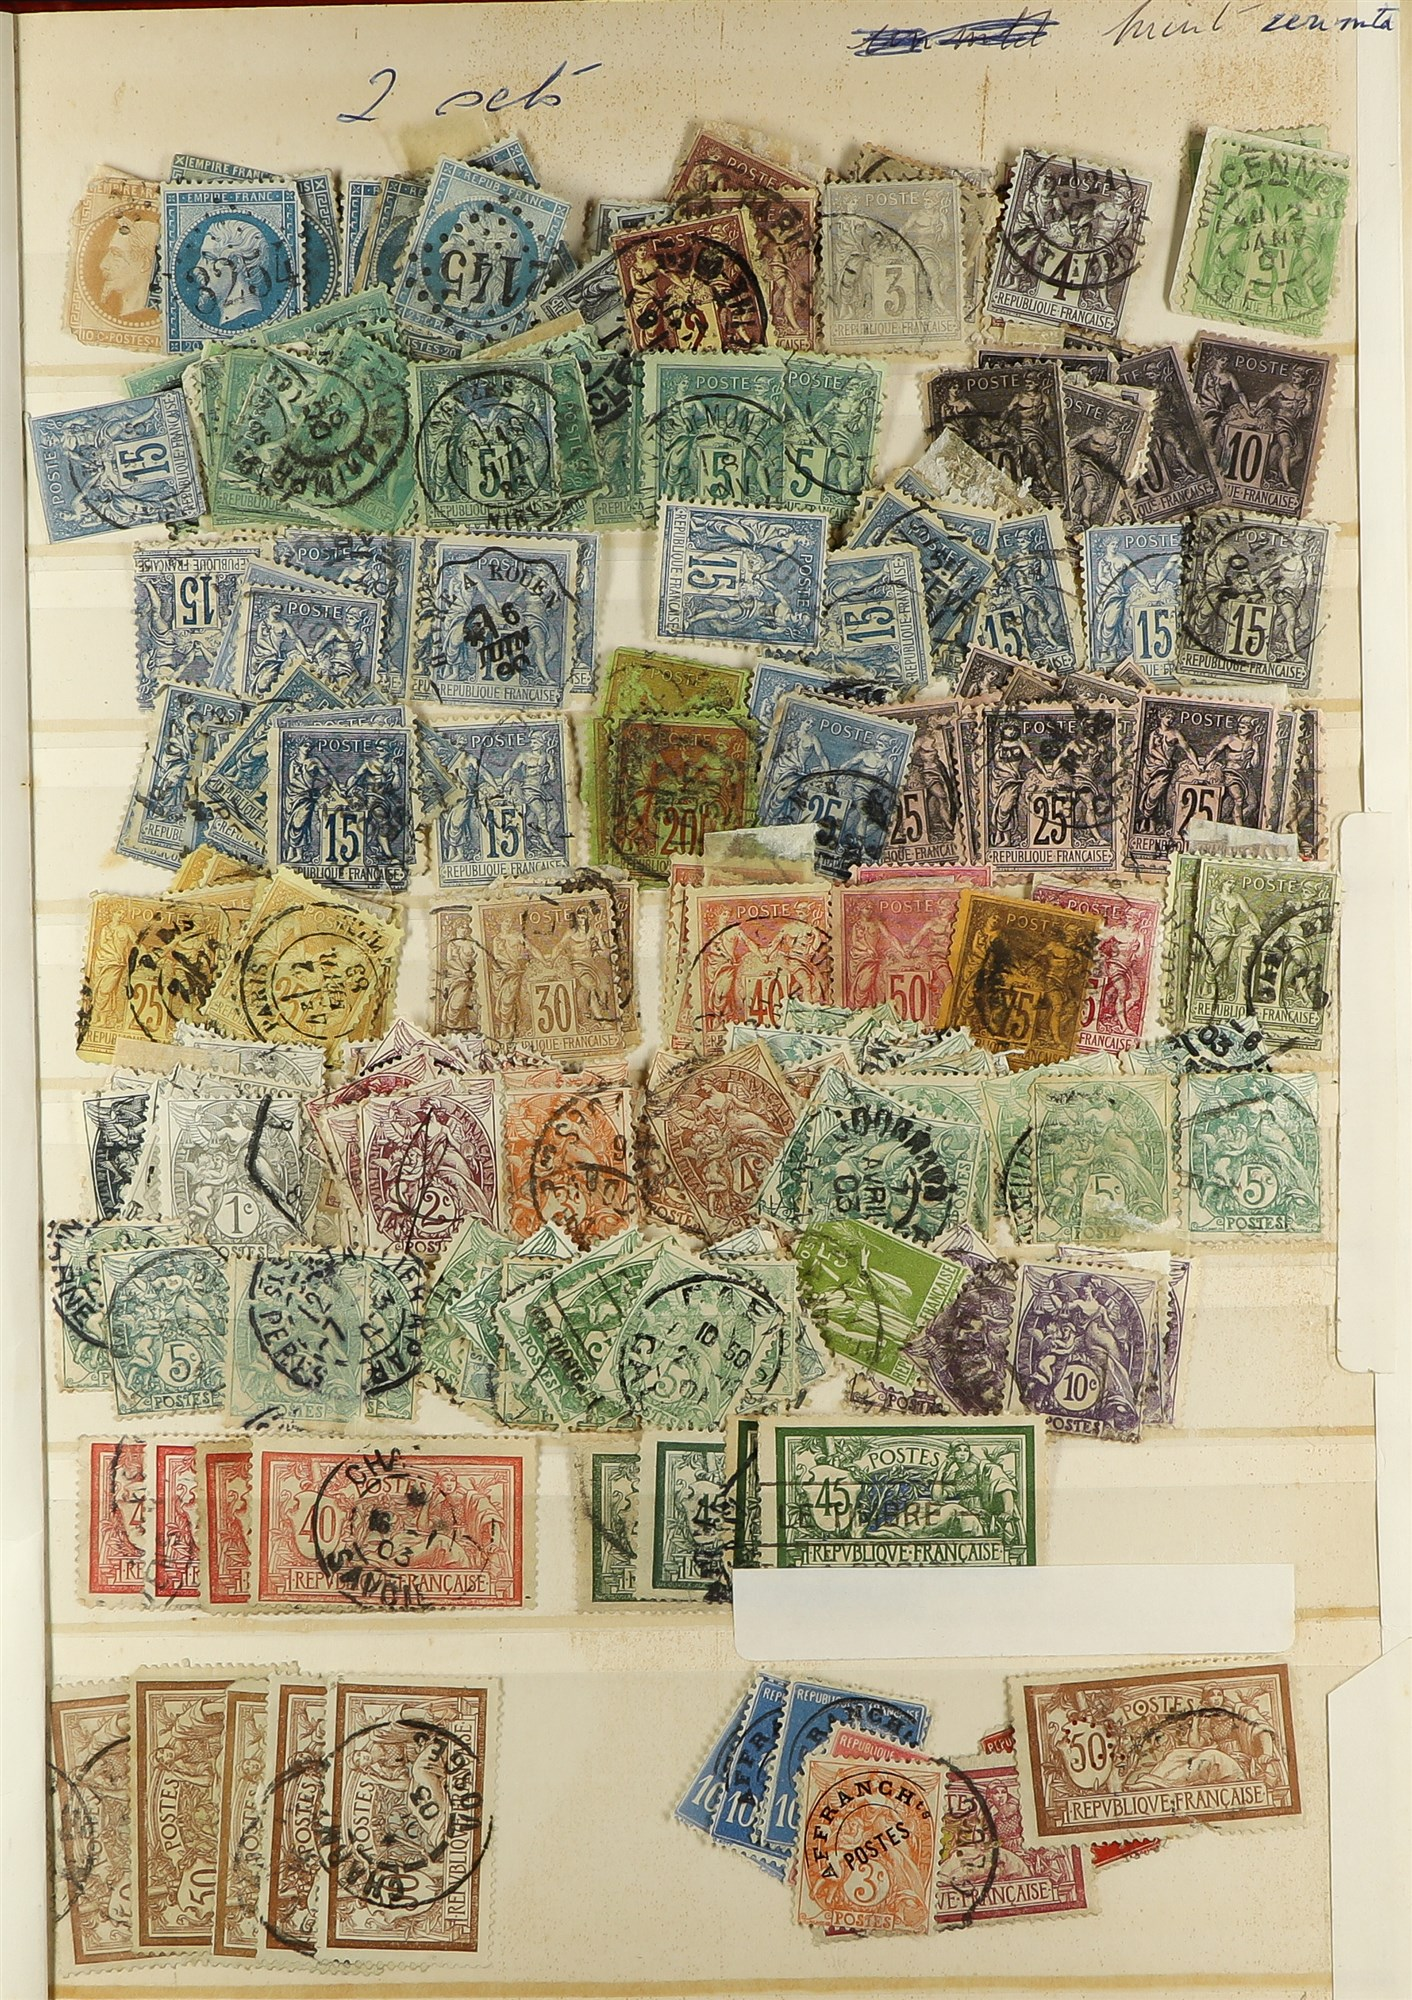 COLLECTIONS & ACCUMULATIONS VAST WORLD ESTATE IN THIRTEEN BOXES with albums, stockbooks, pages, - Image 5 of 10